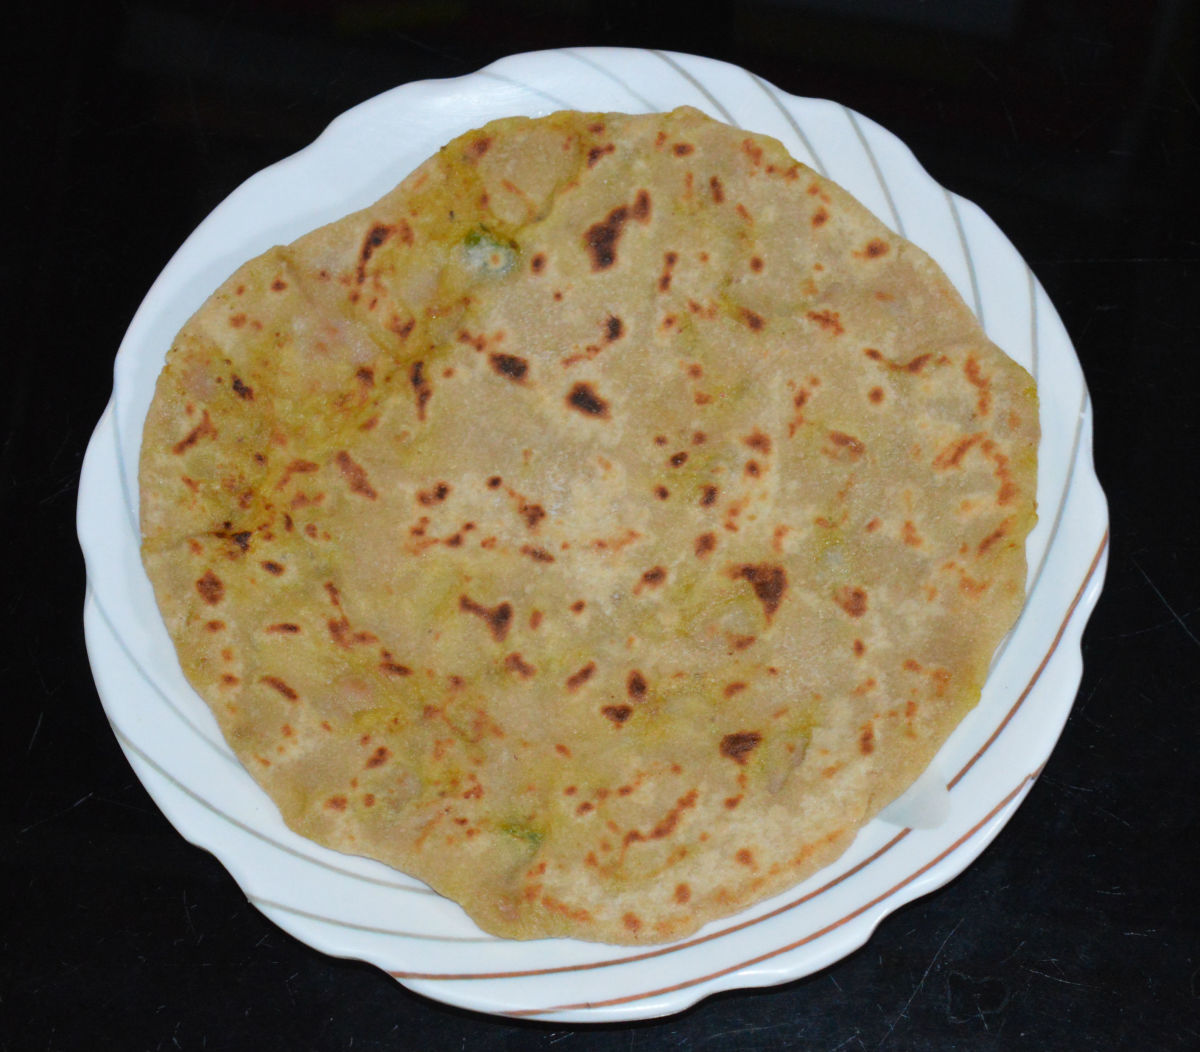 Raw Banana Paratha (Green Banana Flat Bread)